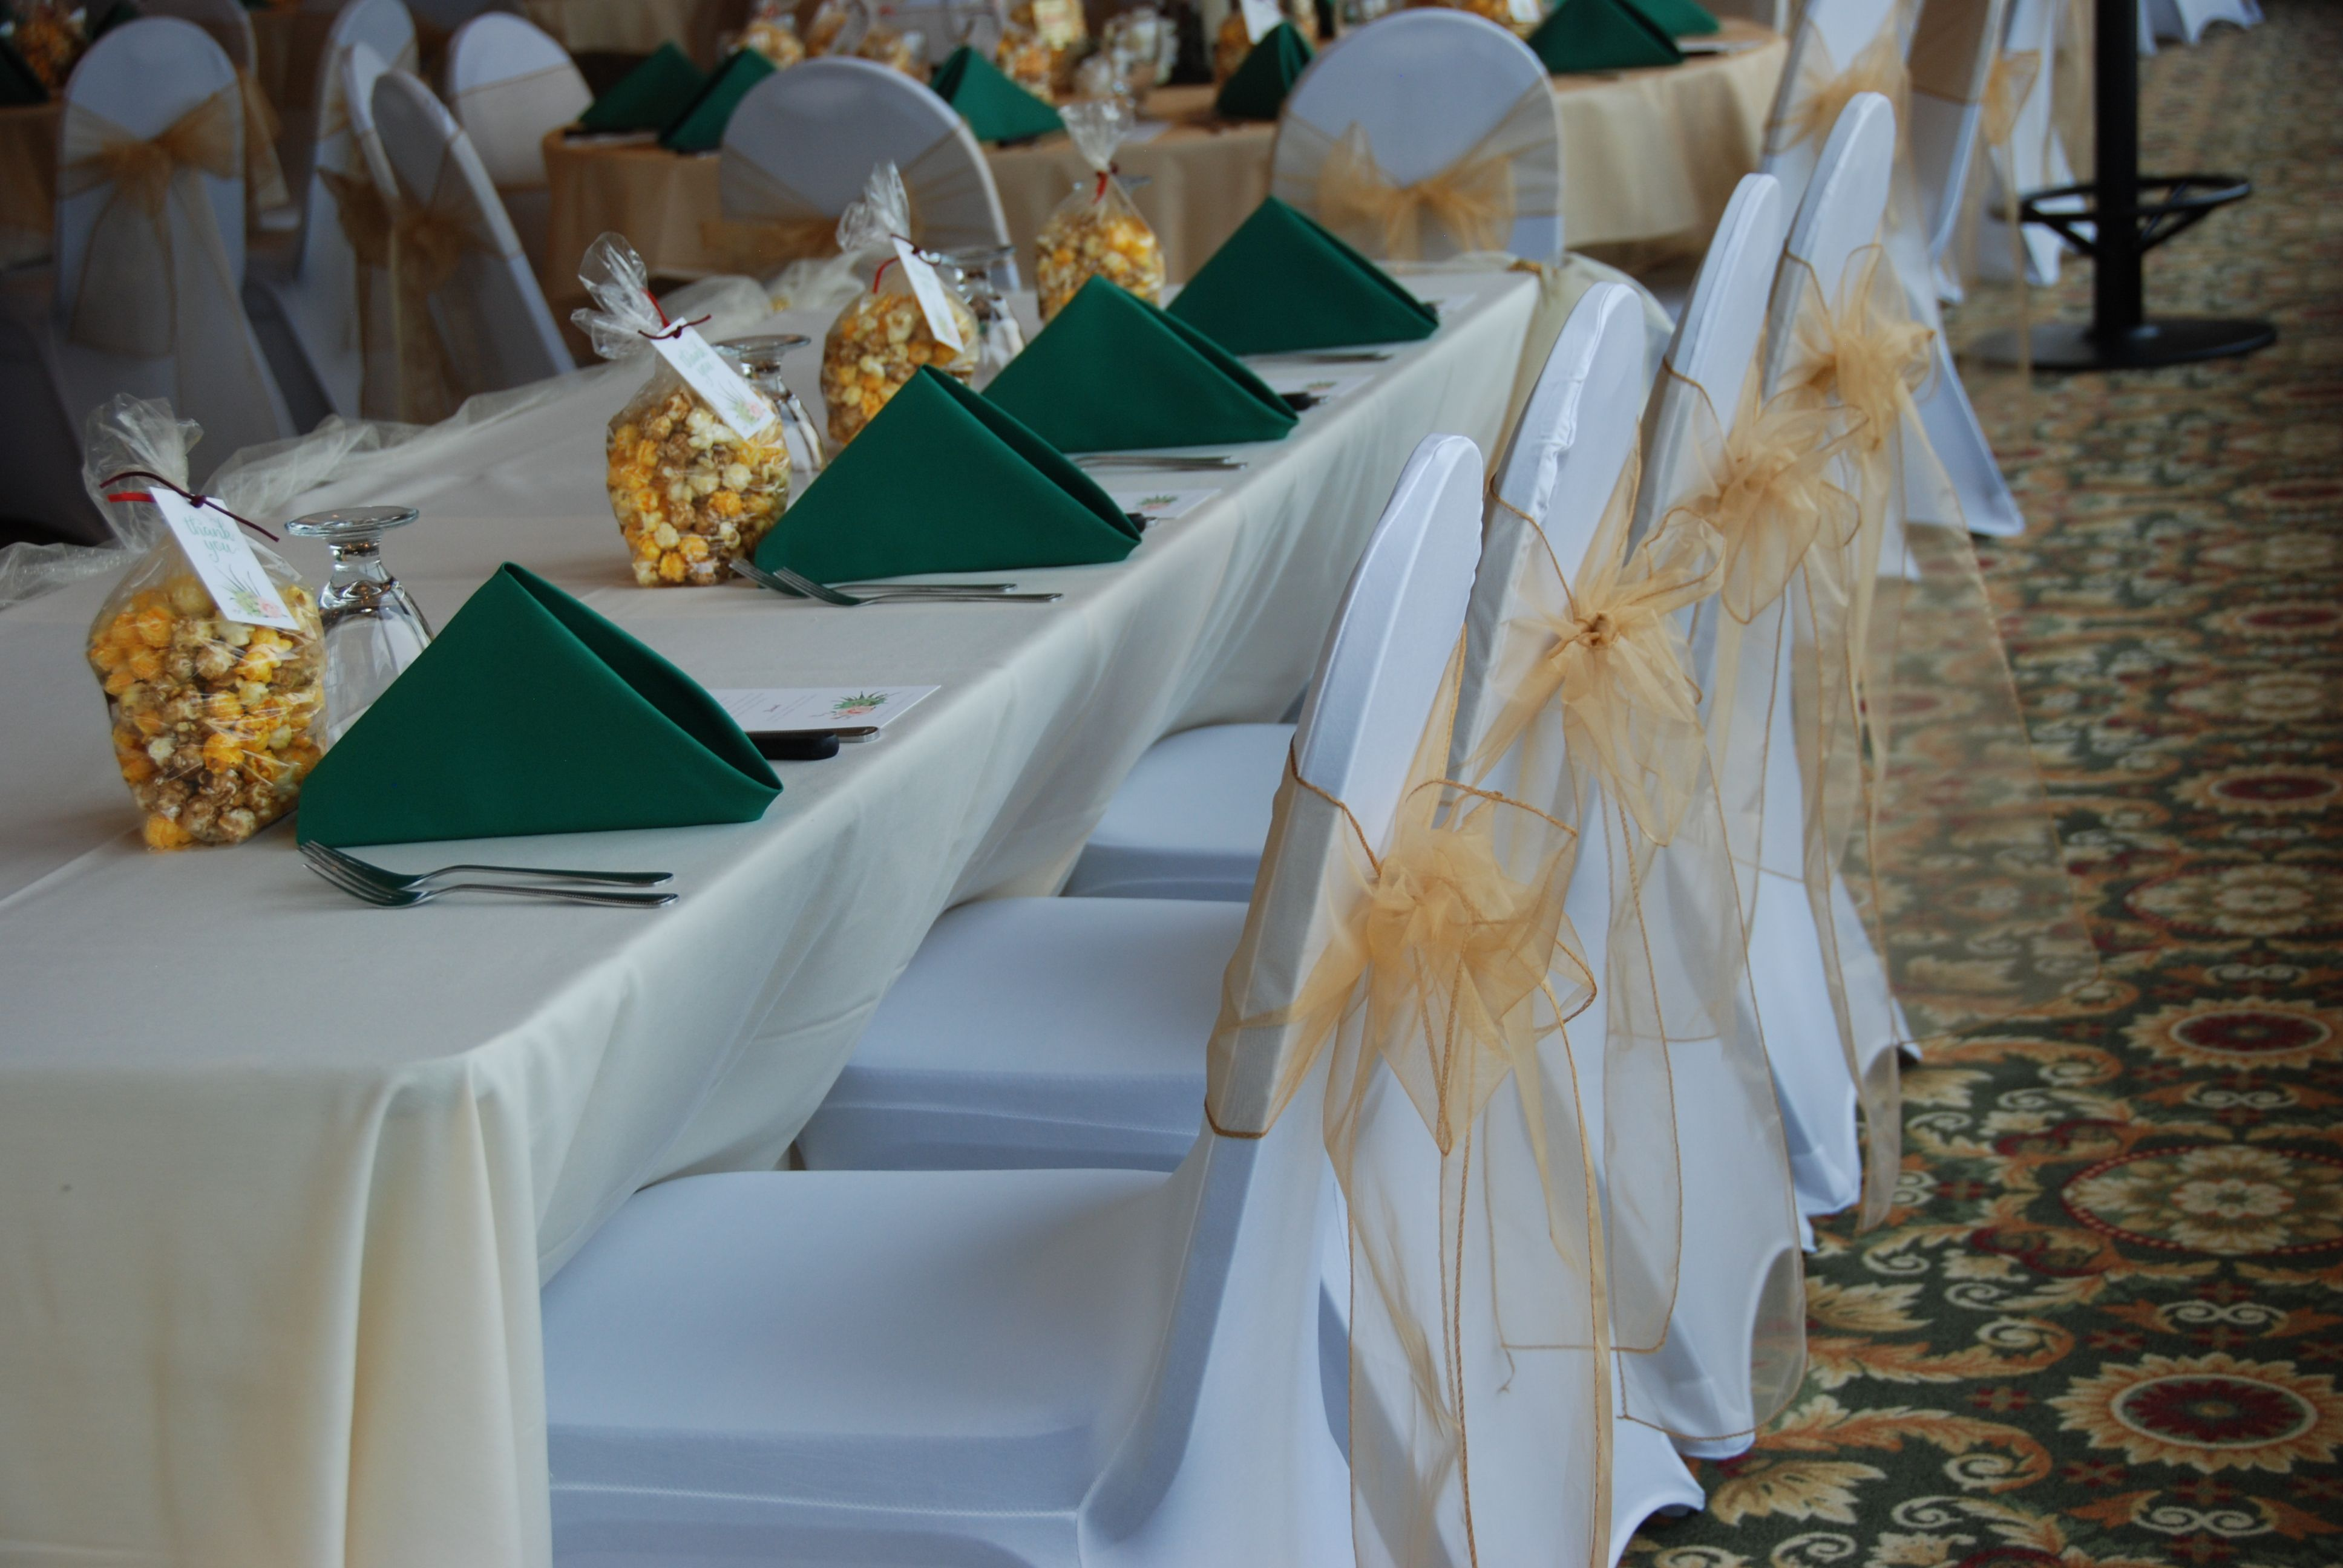 Wedding Chair Cover Hire Kings Lynn Beige Accent Canada Decor Covers Spandex Gold Accents Sash And White Green Napkins